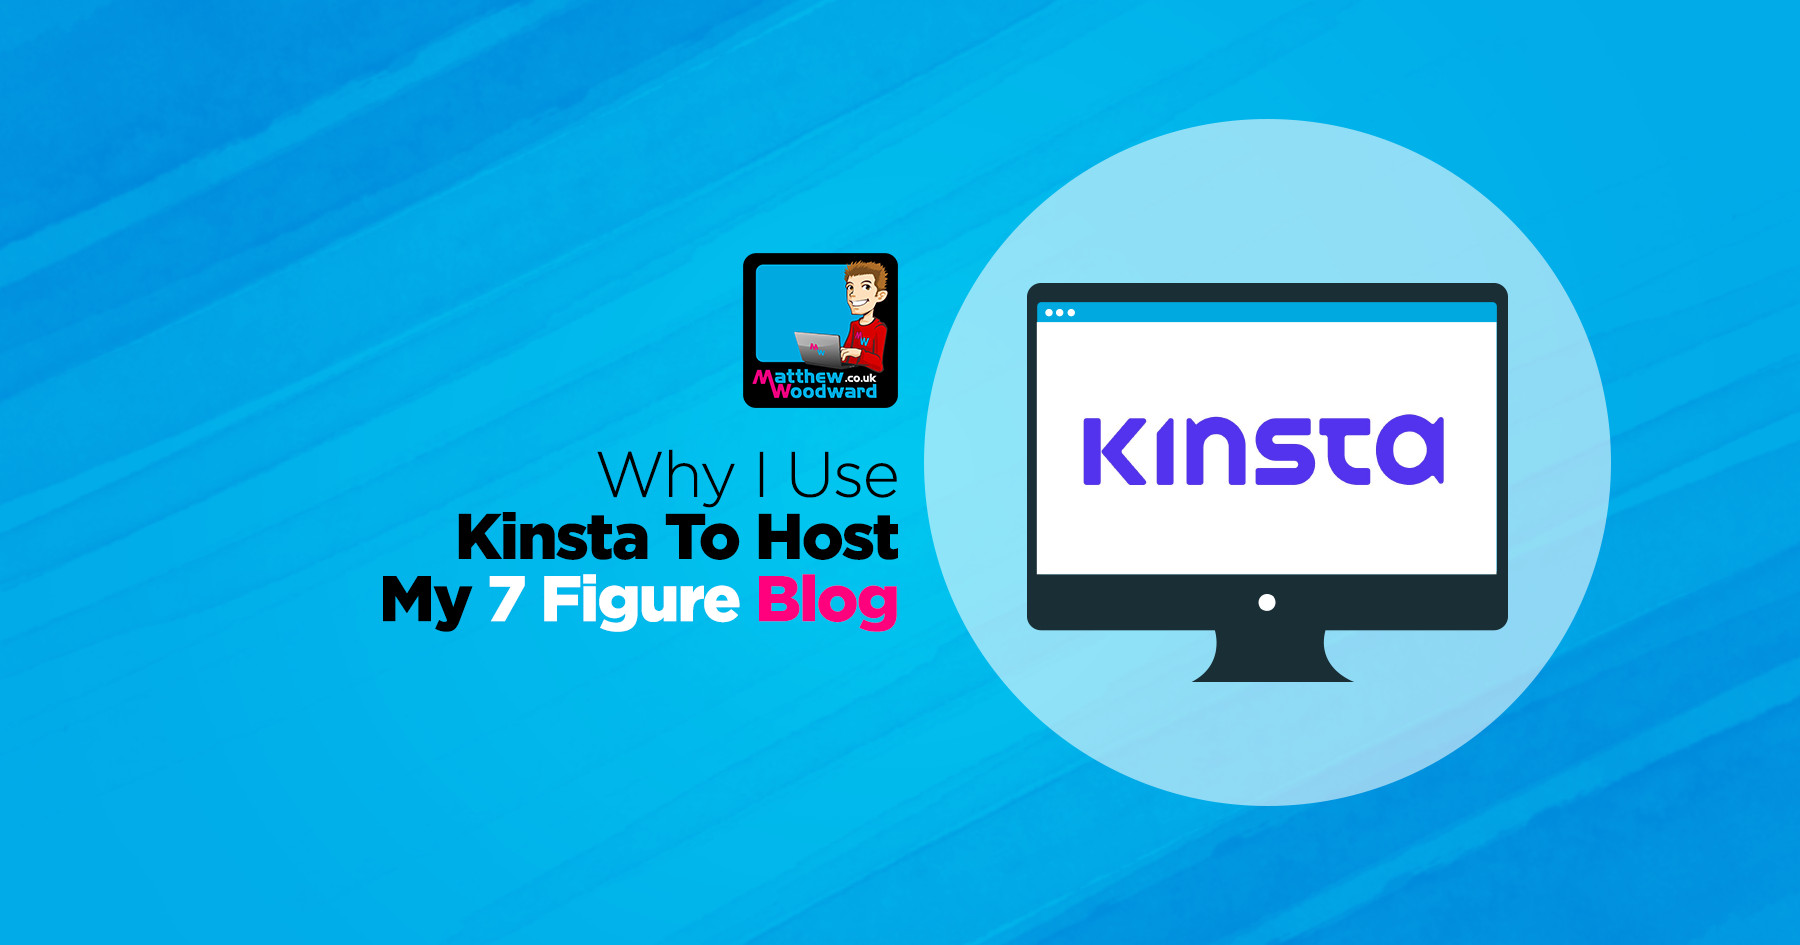 Kinsta Review - Why They Host My 7 Figure WordPress Blog